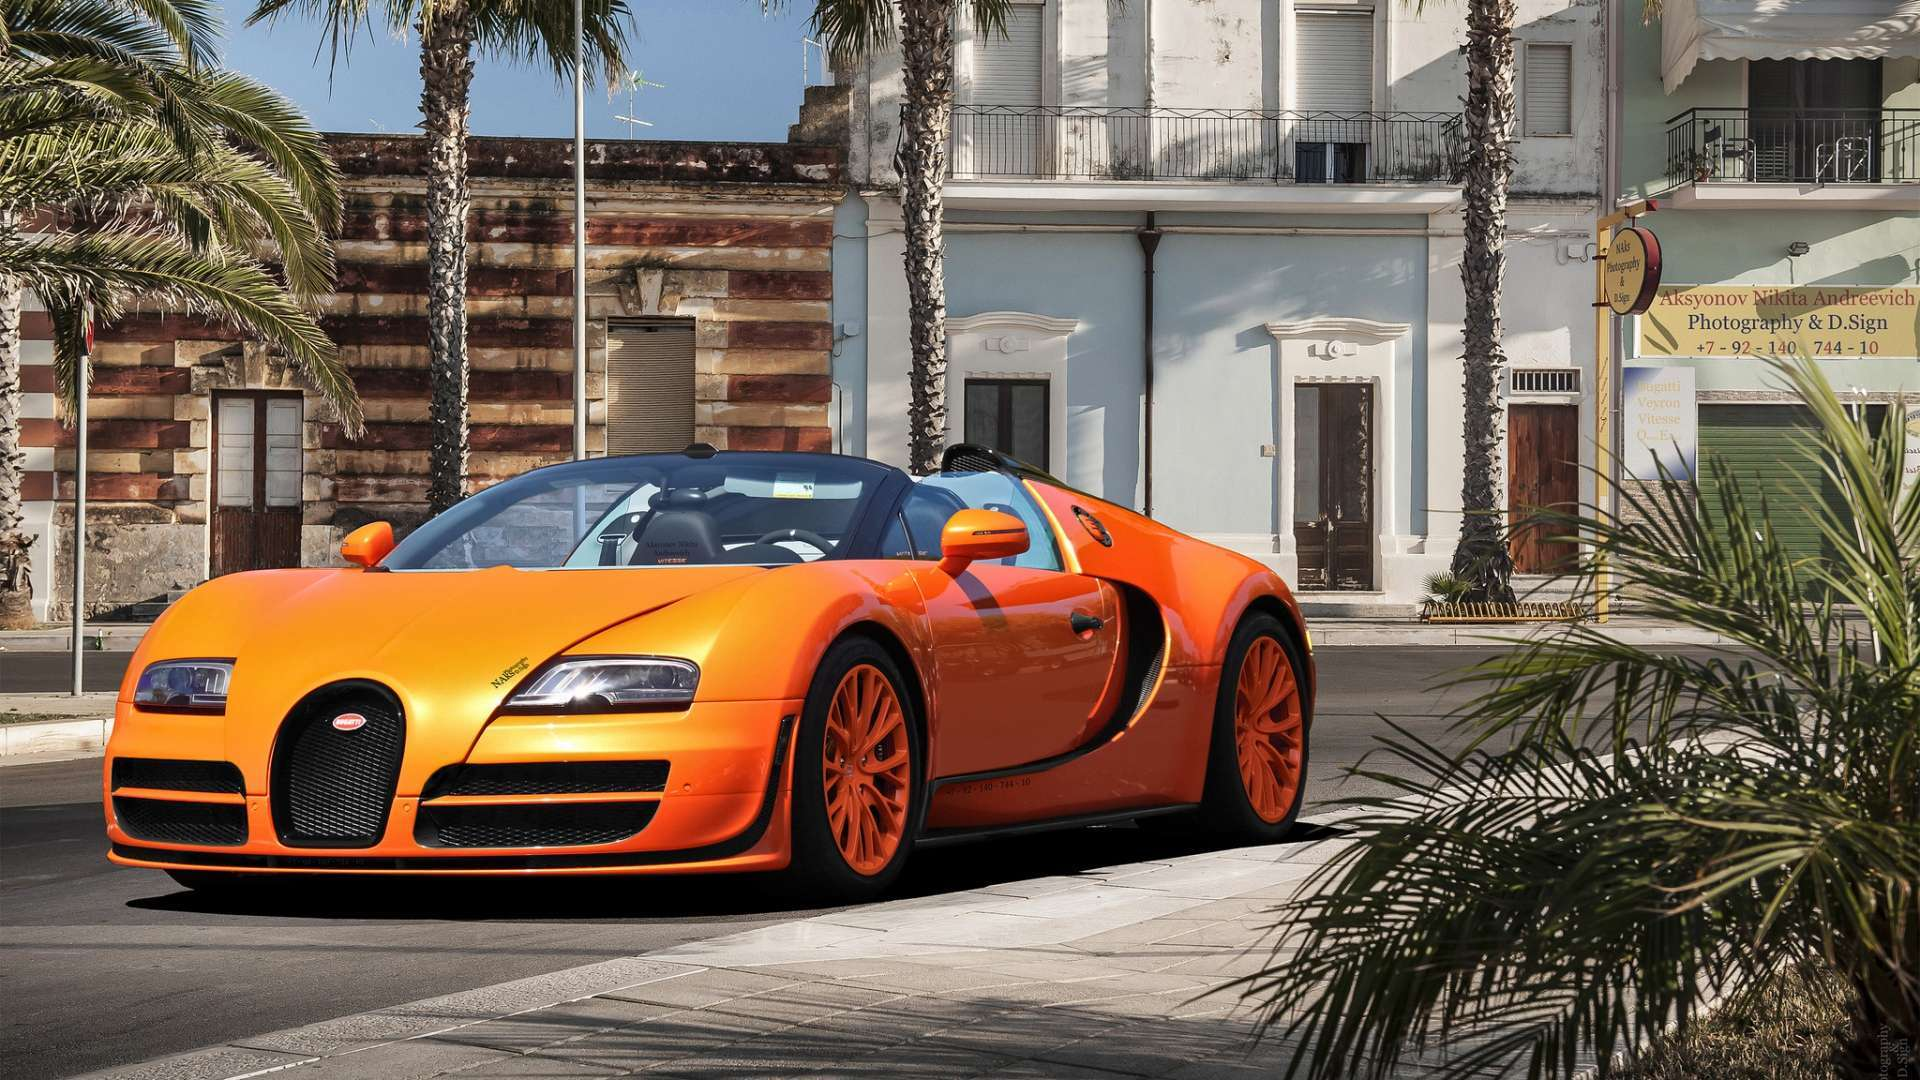 bugatti veyron wallpaper for desktop wallpapersafari. Black Bedroom Furniture Sets. Home Design Ideas